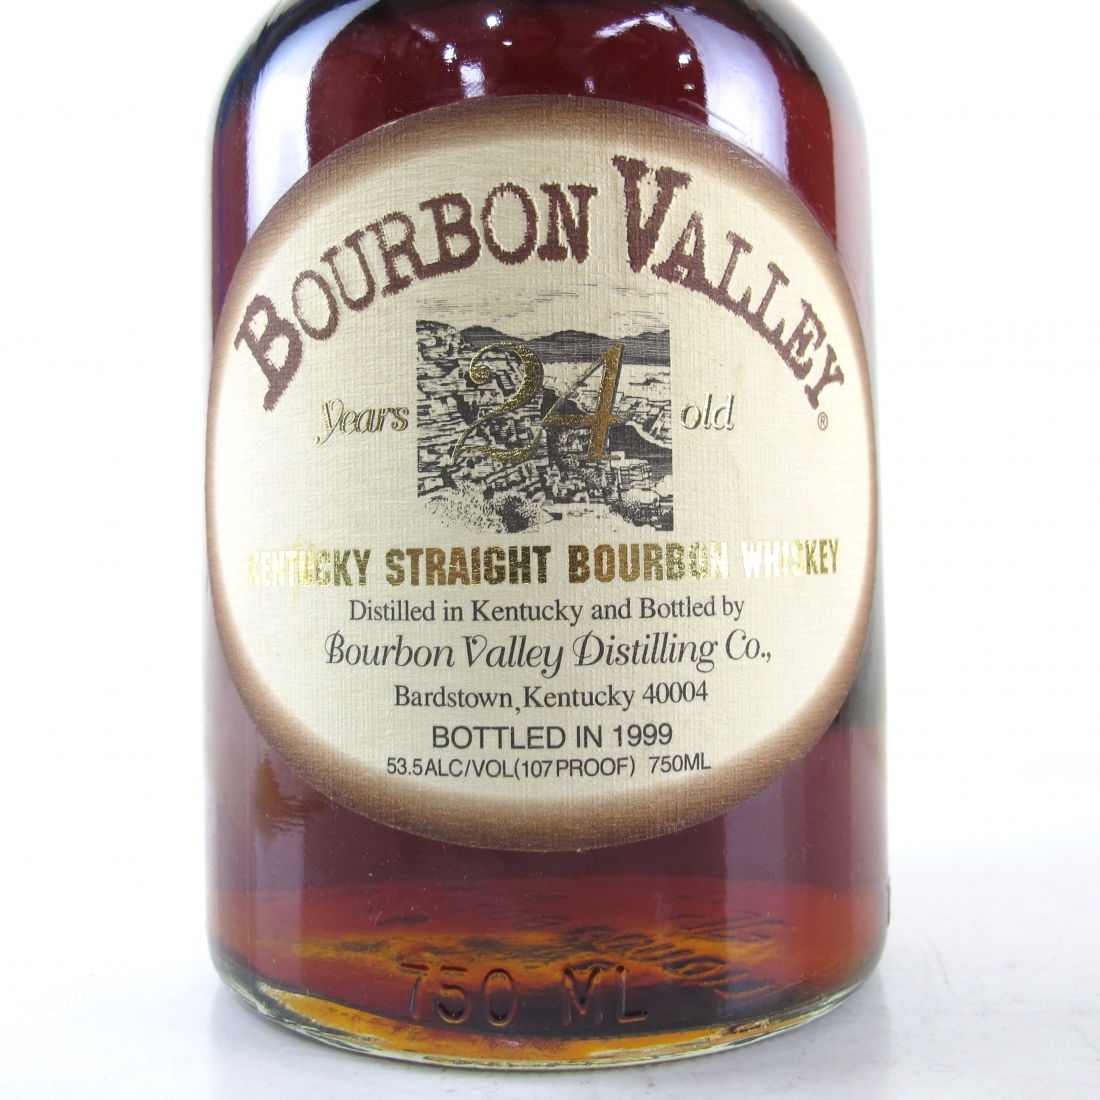 Bourbon Valley 1974 24 Year Old